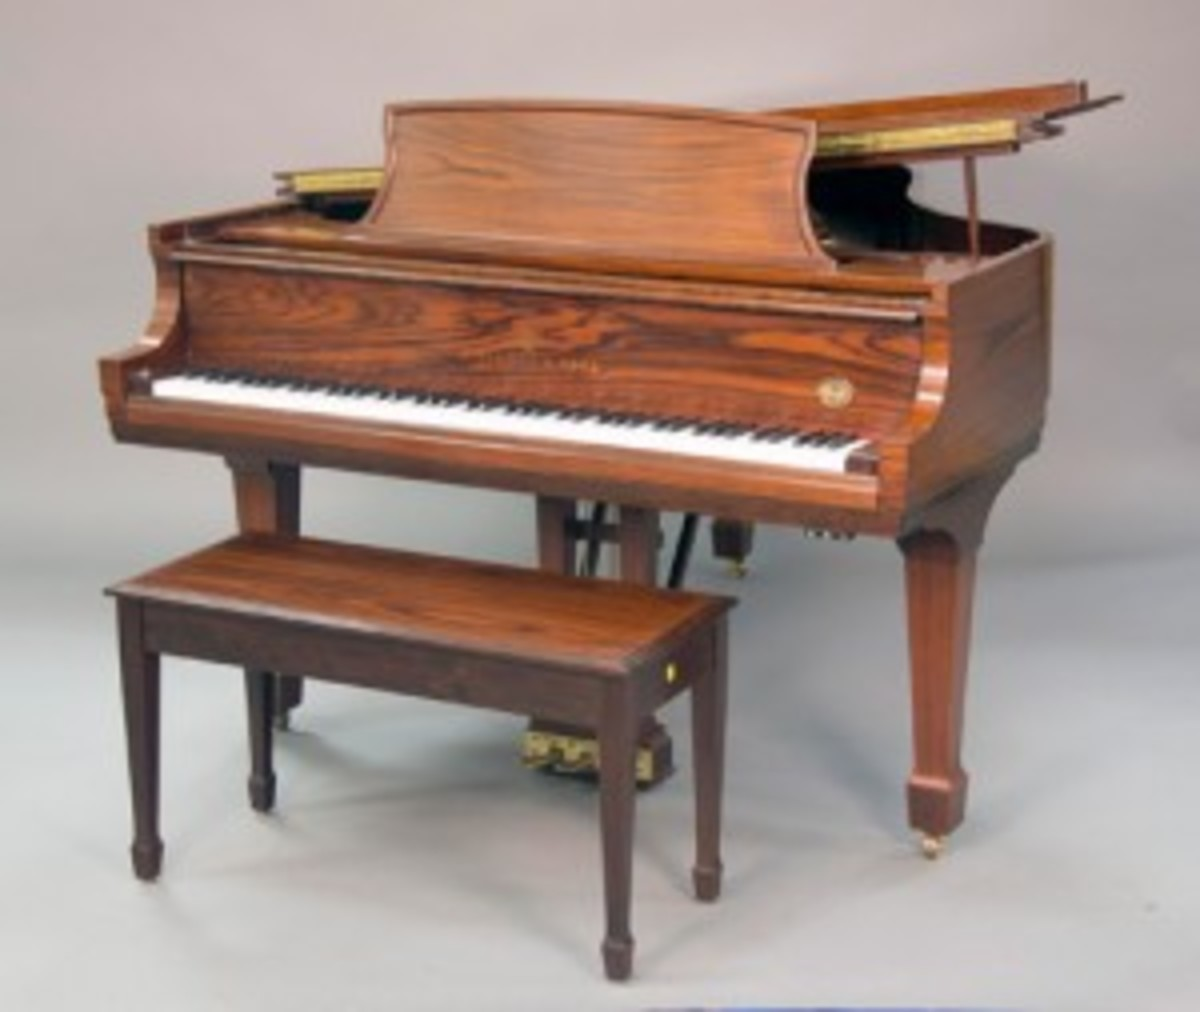 Steinway & Sons Model L piano, sold for $24,000.